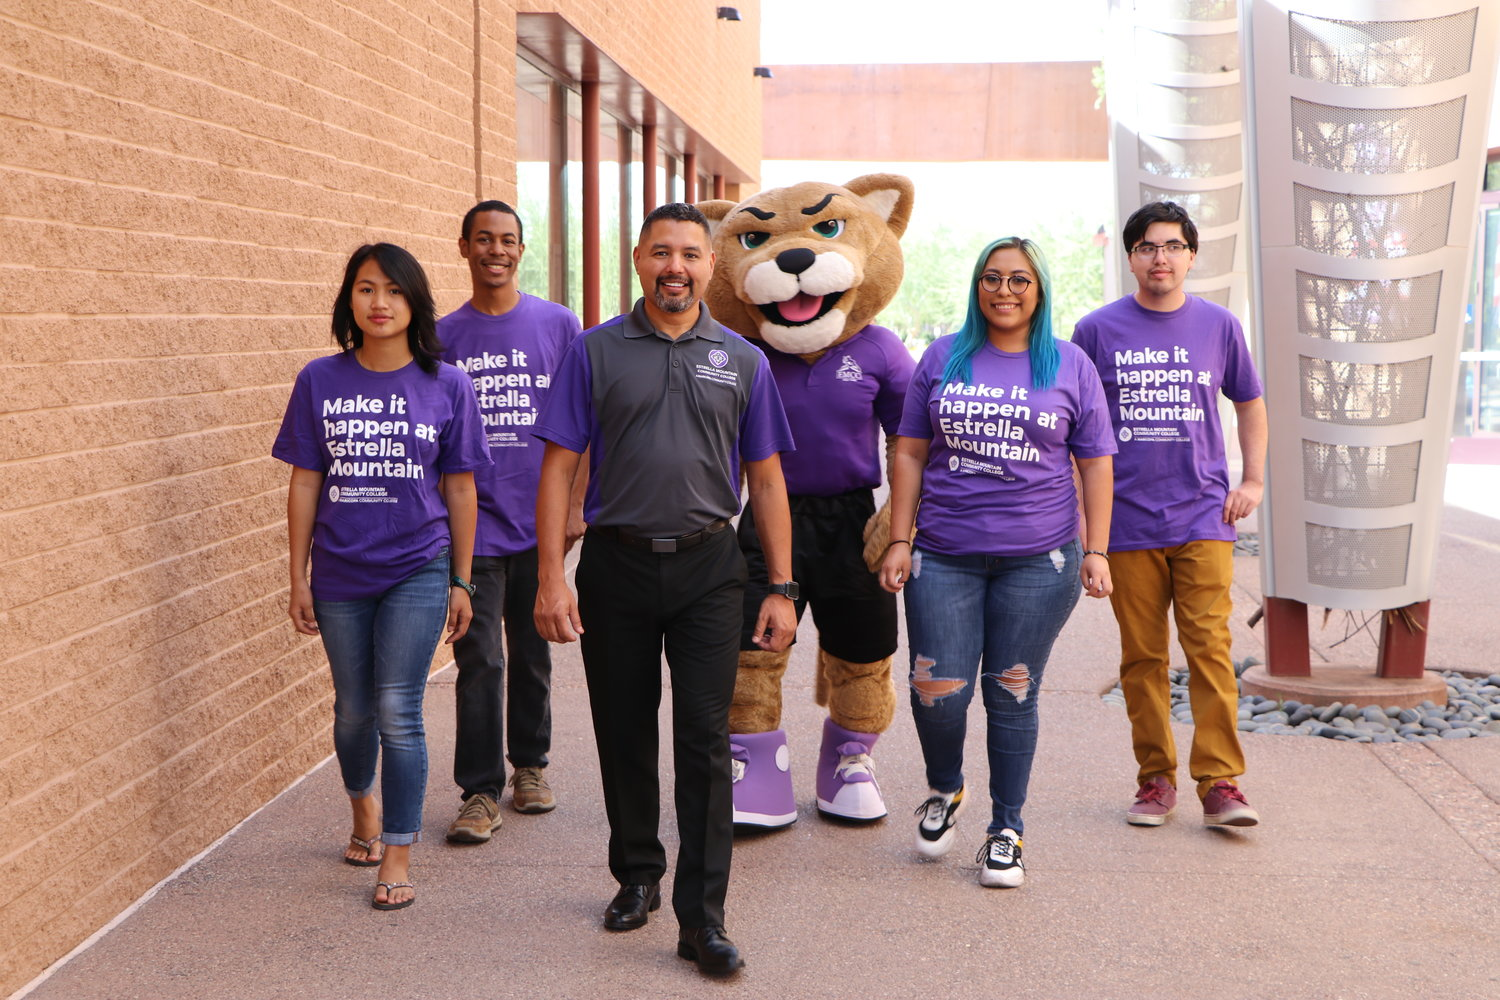 Estrella Mountain Community College president Dr. Rey Rivera poses for a photo with EMCC students and the school mascot, Roary the Estrella Mountain Lion. [Submitted photo]